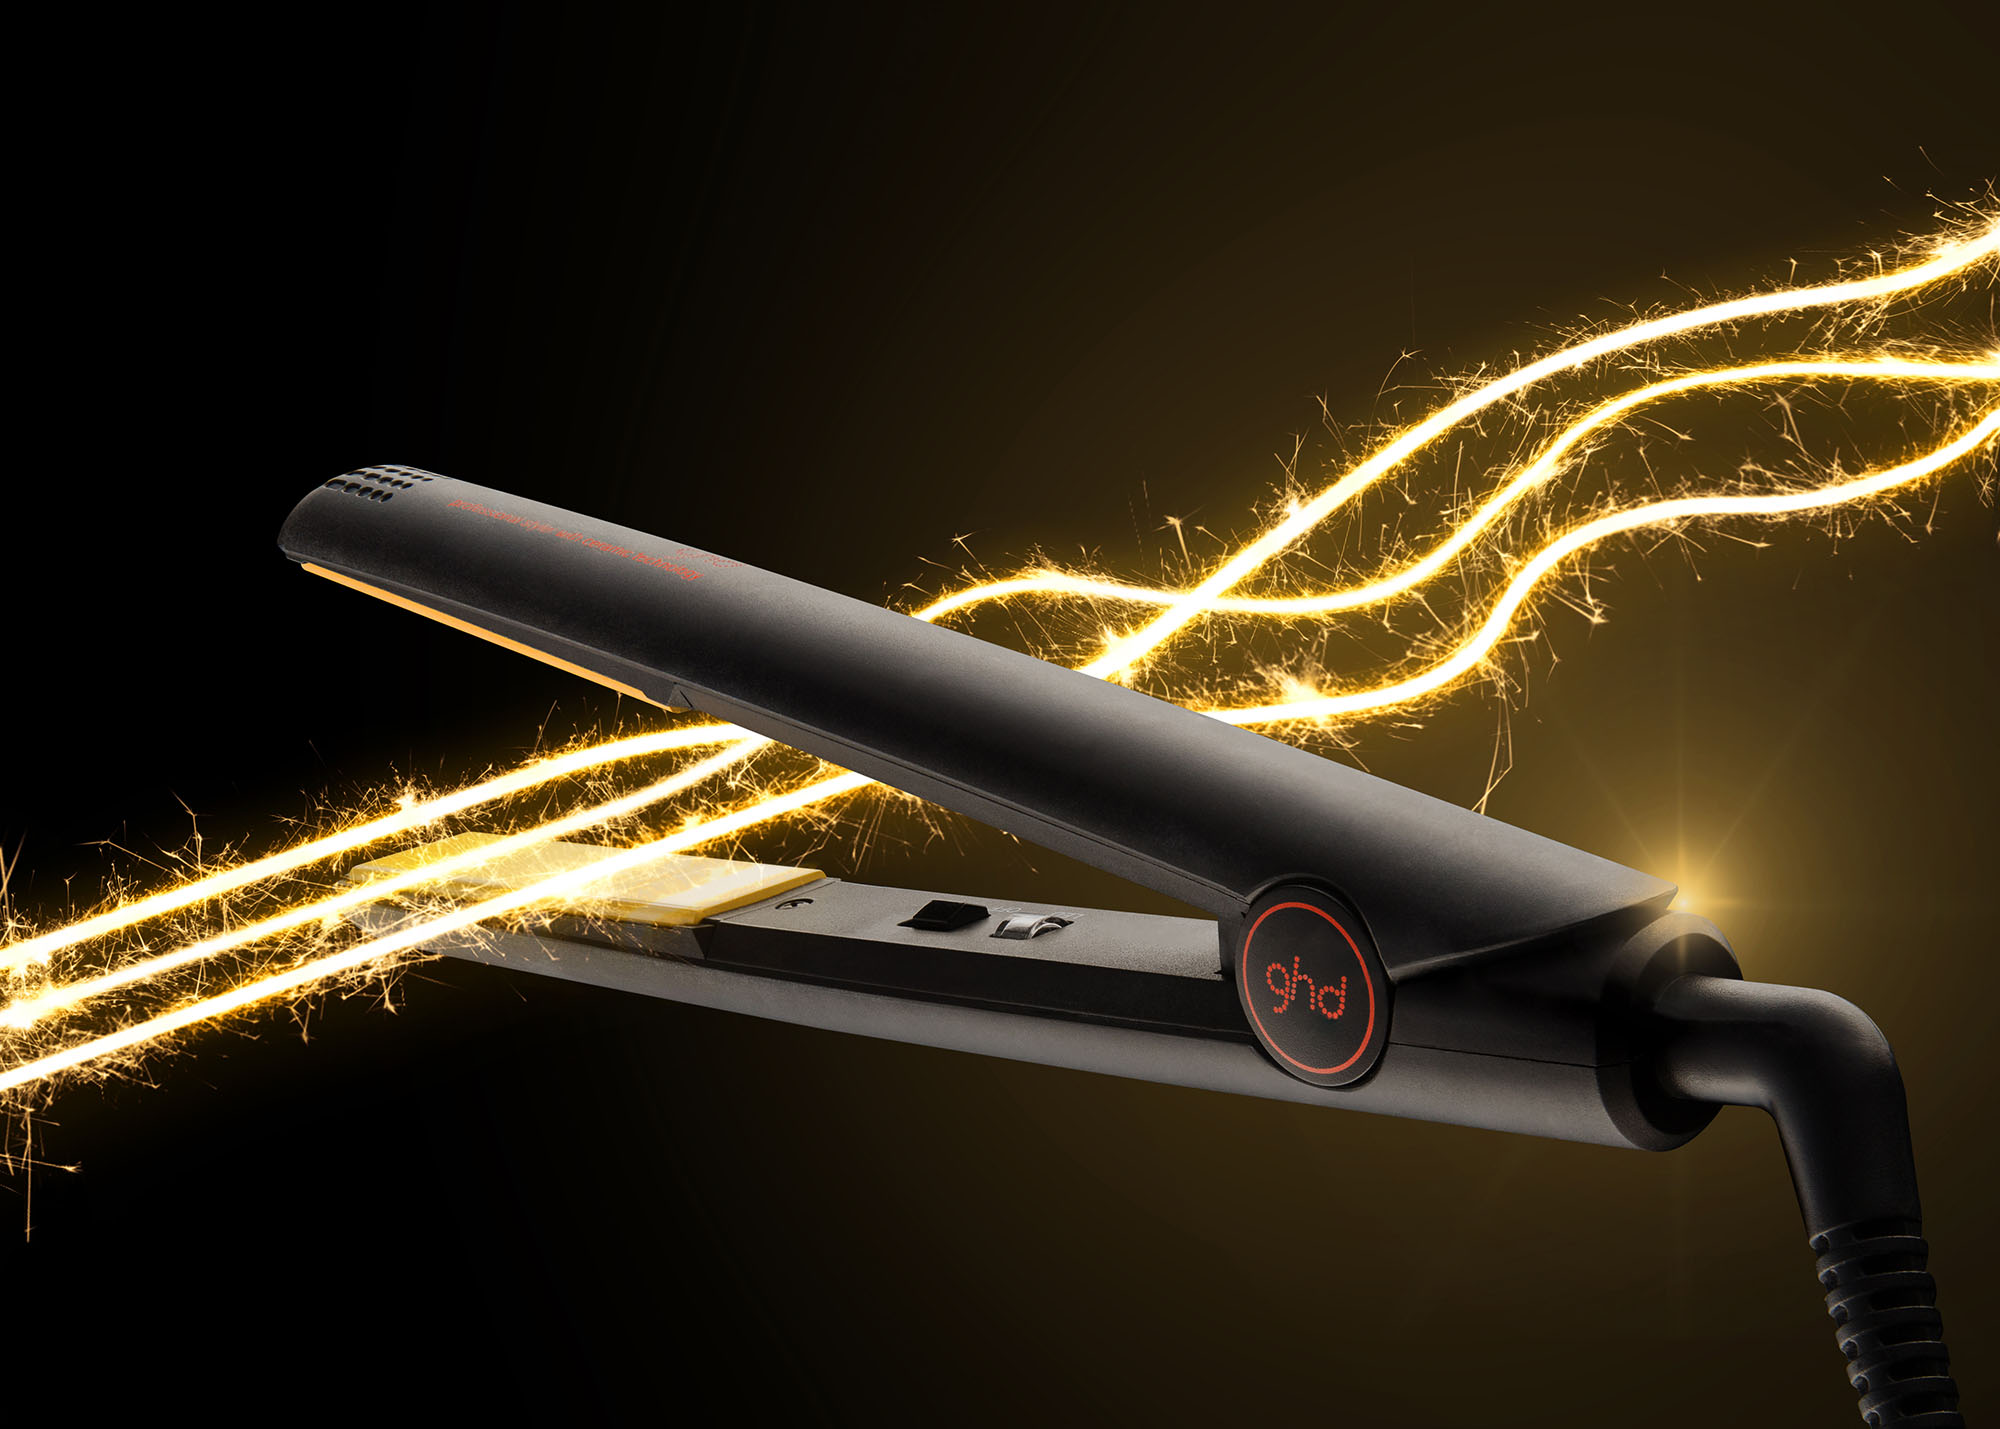 Ian Knaggs Commercial Product Photographer - GHD straighteners with Sparklers